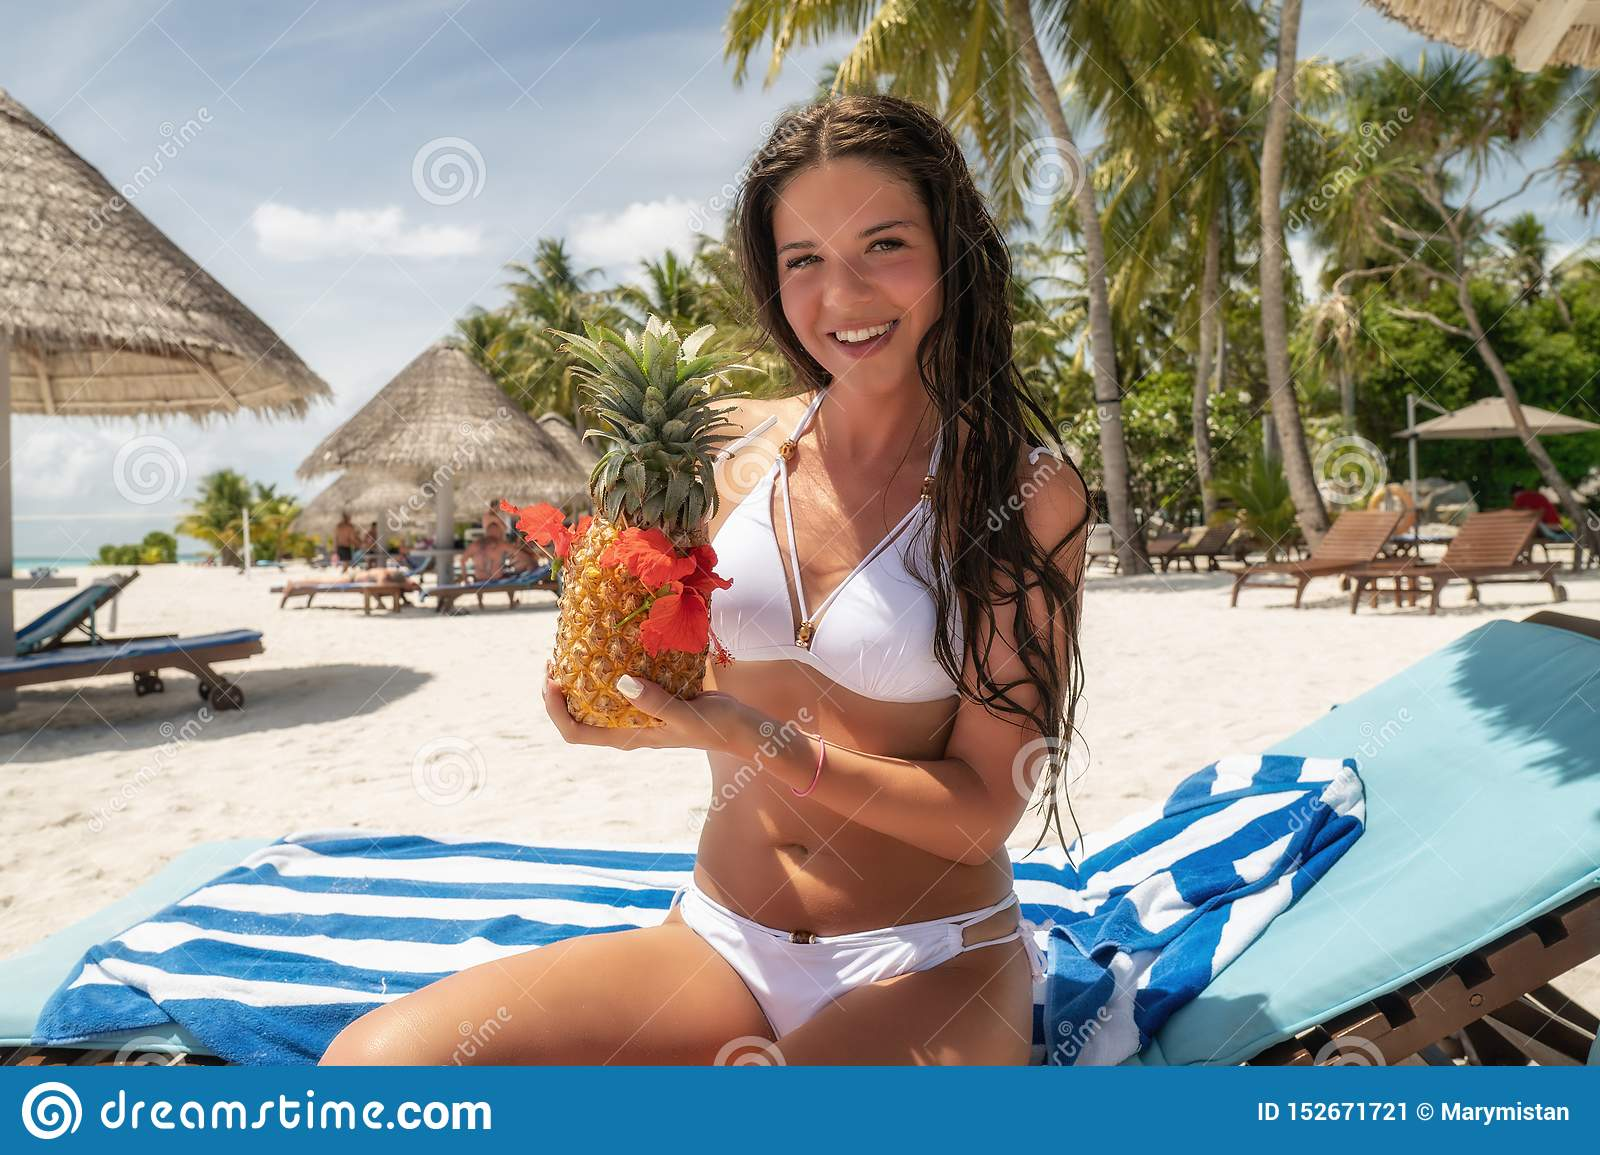 A brunette in a white bathing suit sits on a lounger with a Pina Colada cocktail in a pineapple